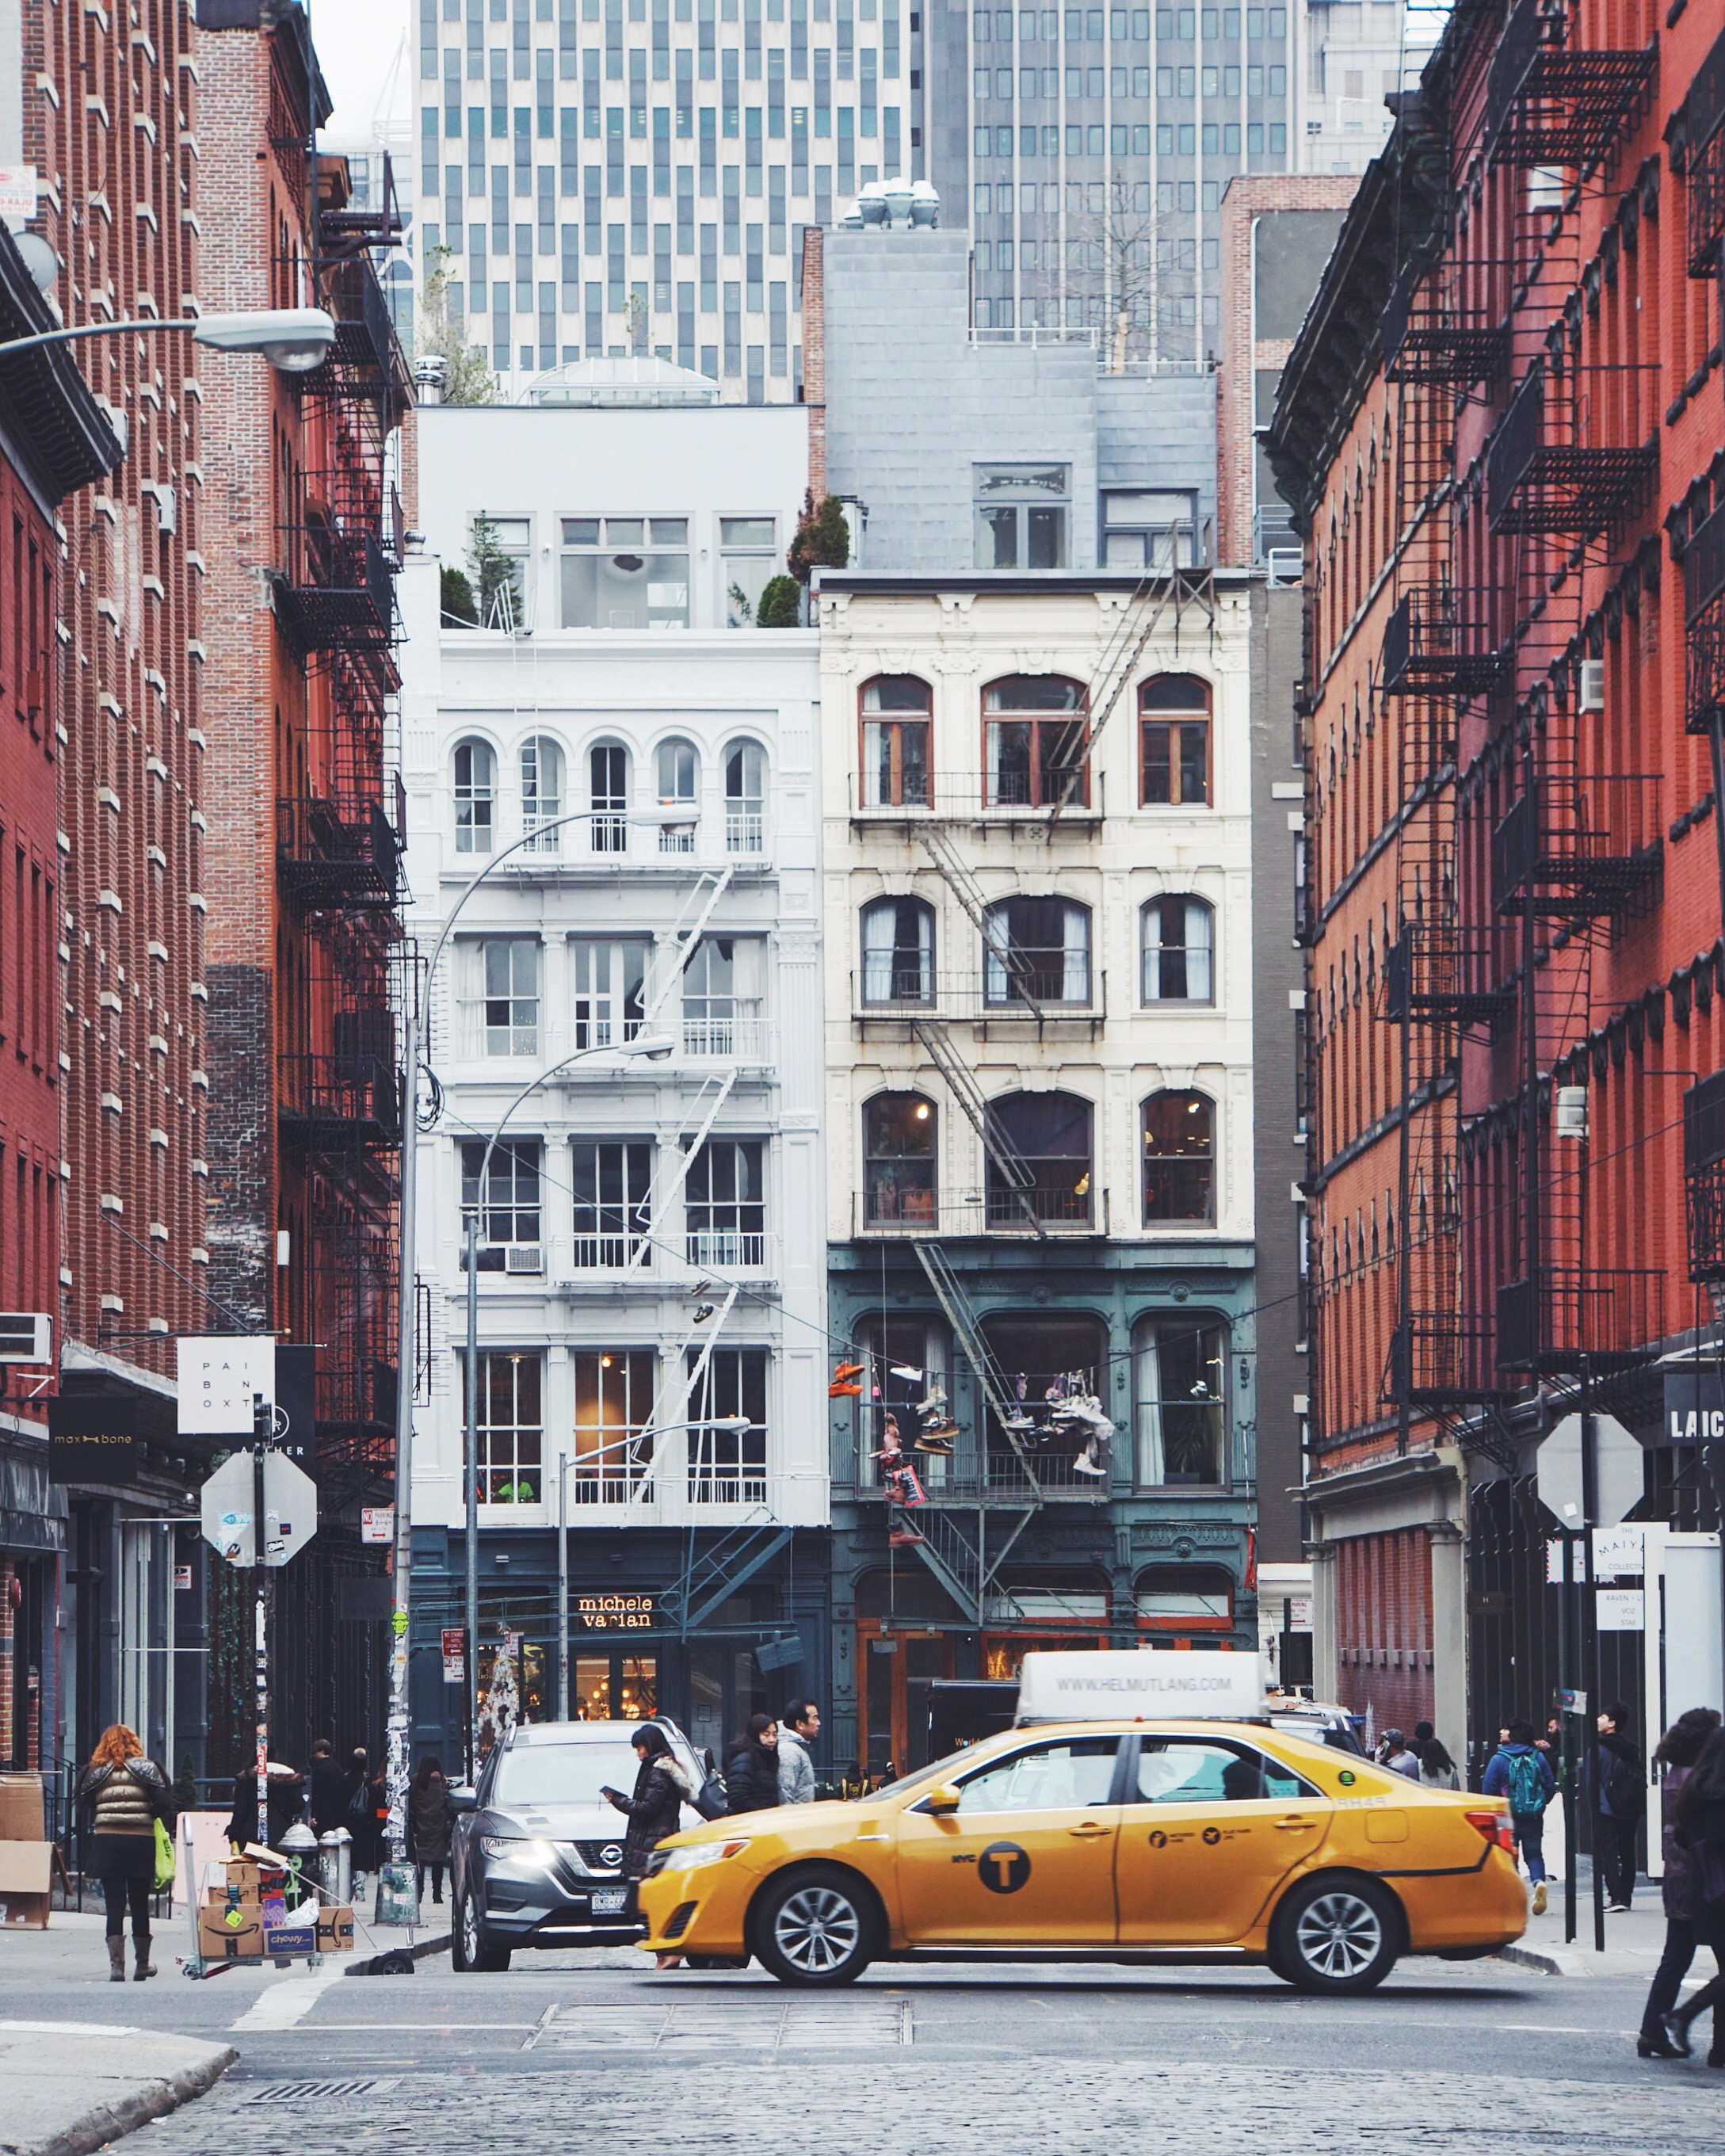 what is making it in manhattan? - Believe it or not- Making it in Manhattan the site came a few months after the idea of Making it in Manhattan the book was born. While still working at InStyle Magazine, I created Making it Manhattan as an outlet for anyone, who like me, was about to start out their career in the fashion industry. Maybe you wanted to get their foot in the door but had no where to turn, or really just had no idea what you were doing. Don't worry, you're not alone. That was me back in 2013/2014 when I was just about to graduate college, I knew absolutely no one in the fashion industry, and yet, I knew it was where I belonged. So day in and day out, as I sat behind my desk at InStyle, now two years out of college and into my career- I felt as though I owed it to aspiring fashion hopefuls to share what I had learned. You see, there was no roadmap, no all encompassing beginners guide book, or a place I could turn to feel less alone. So I set out to create one. Because no matter how much you've already